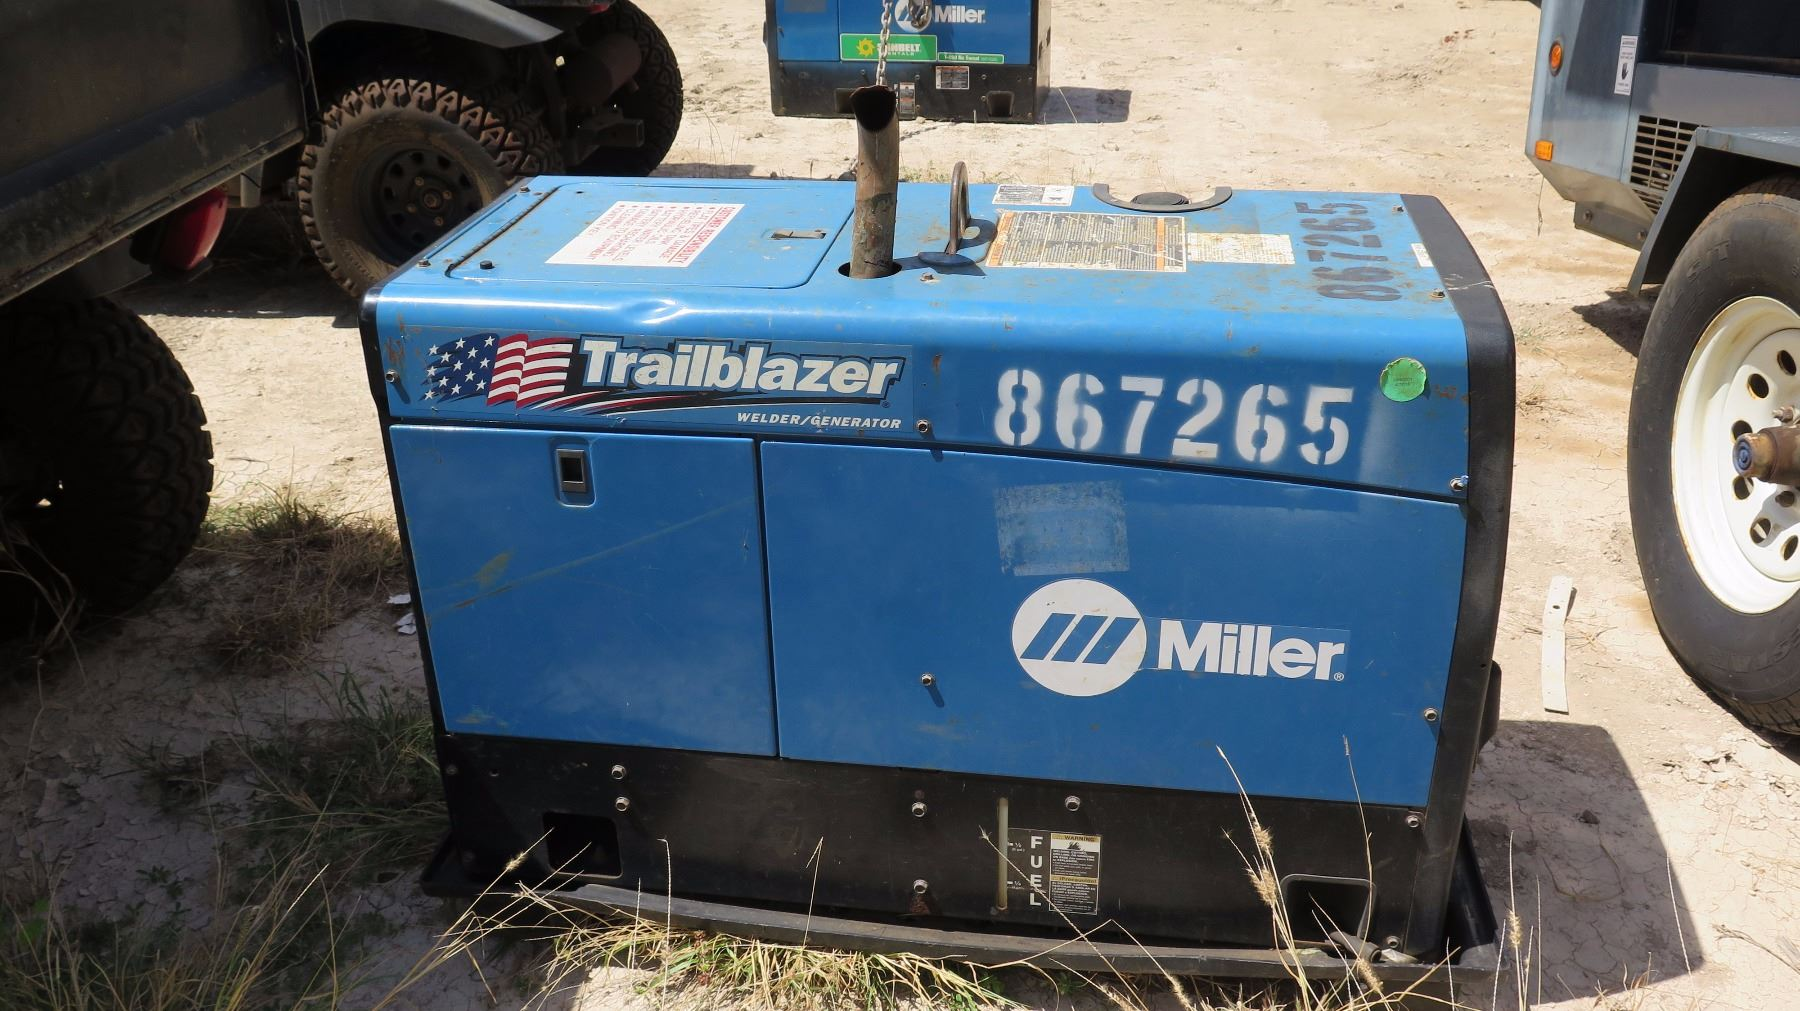 trailblazer 302 12012018 recent miller trailblazer 302 welder generator 907217 907216 questions, problems & answers free expert diy tips, support, troubleshooting help .